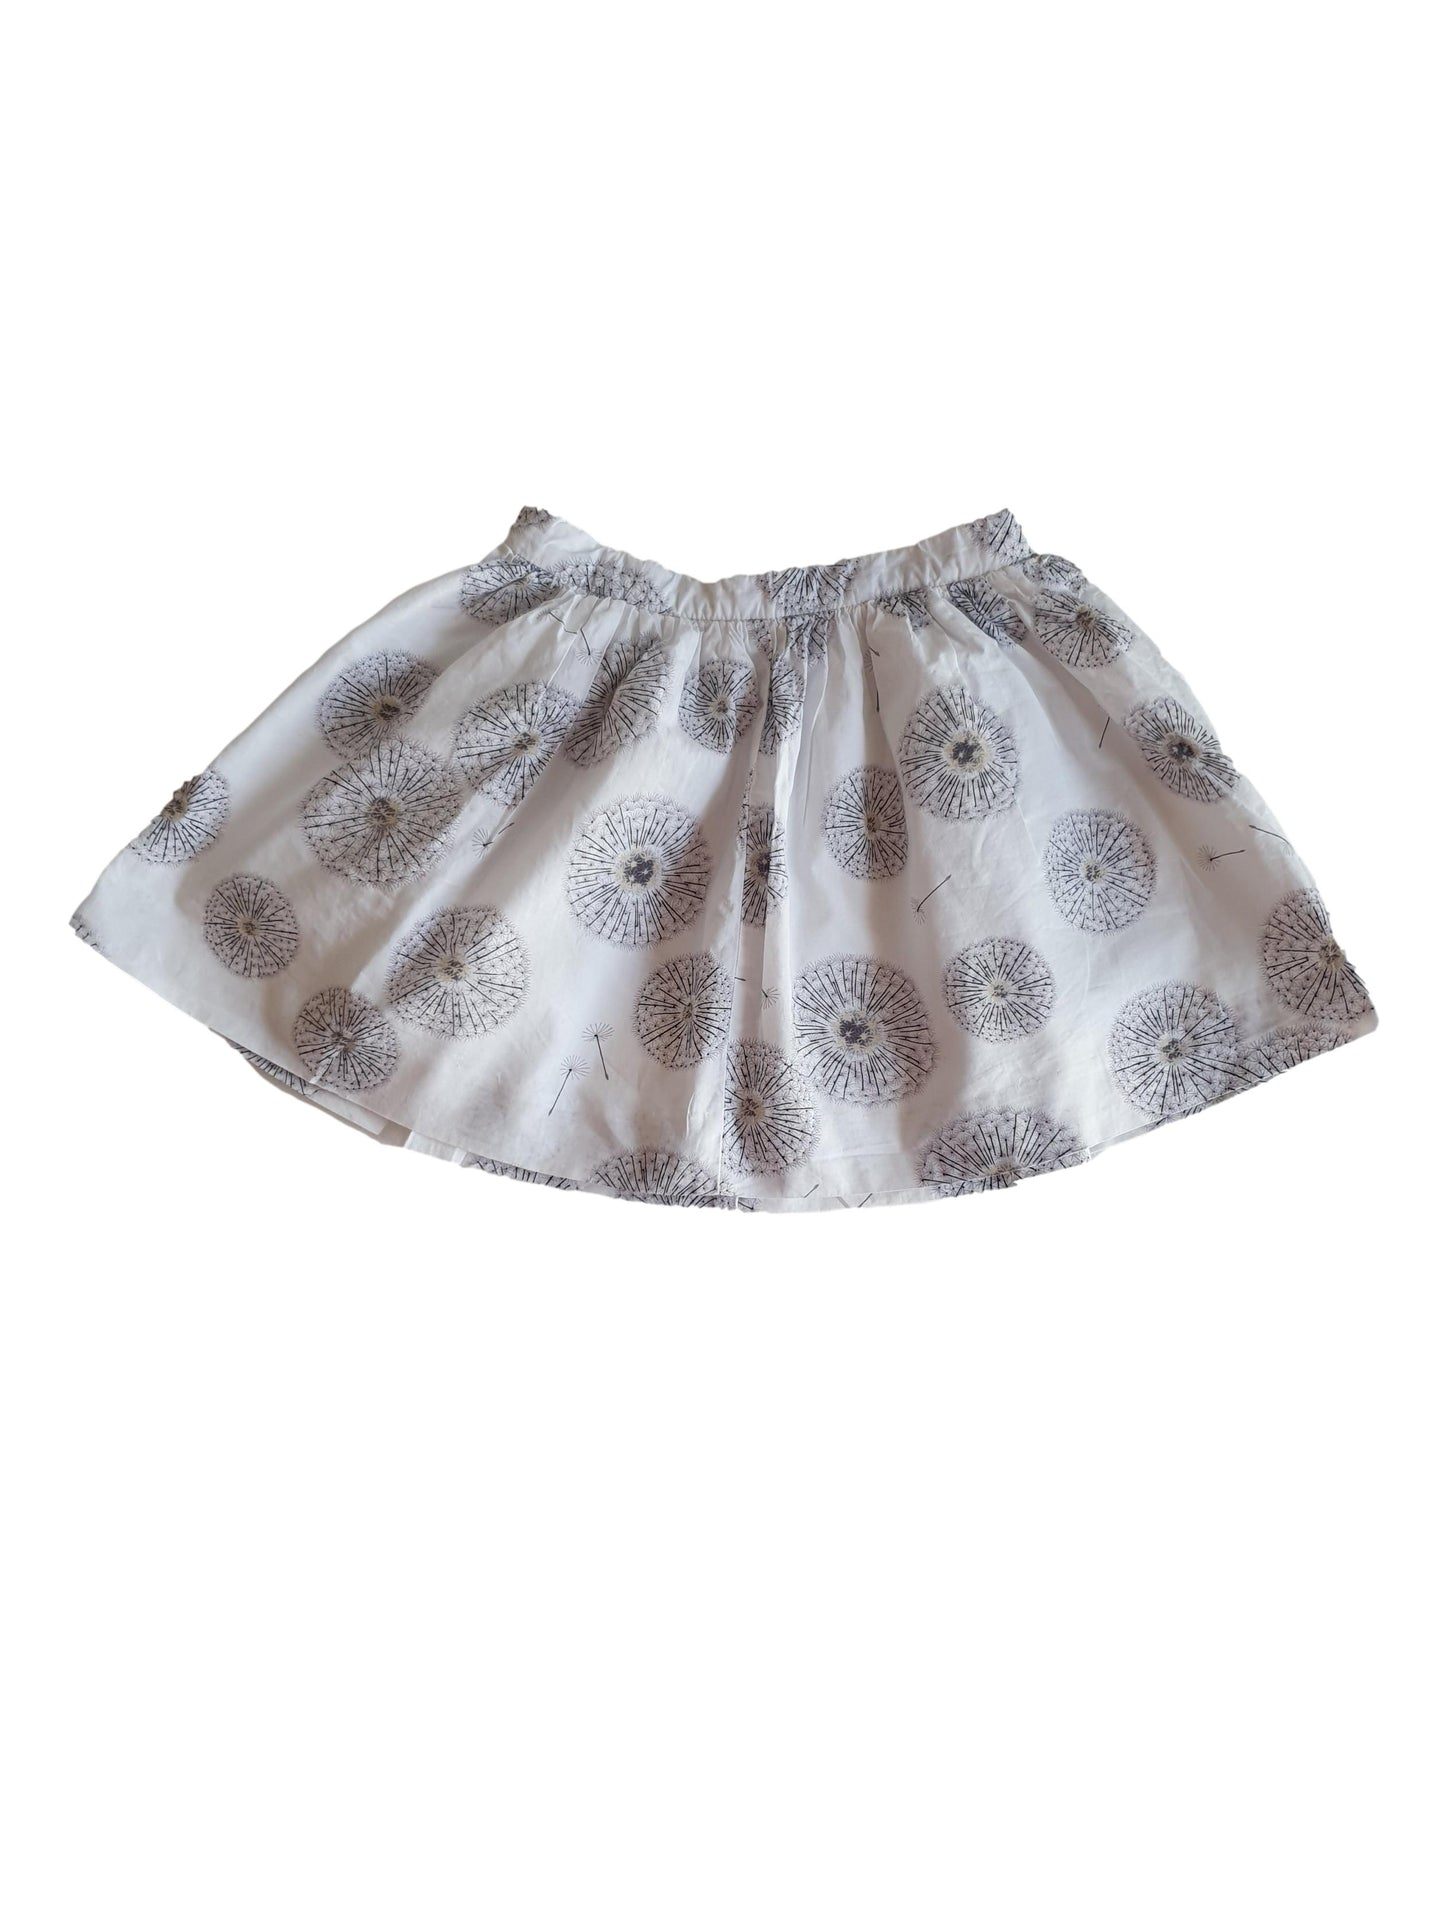 JACADI girl skirt 4yo